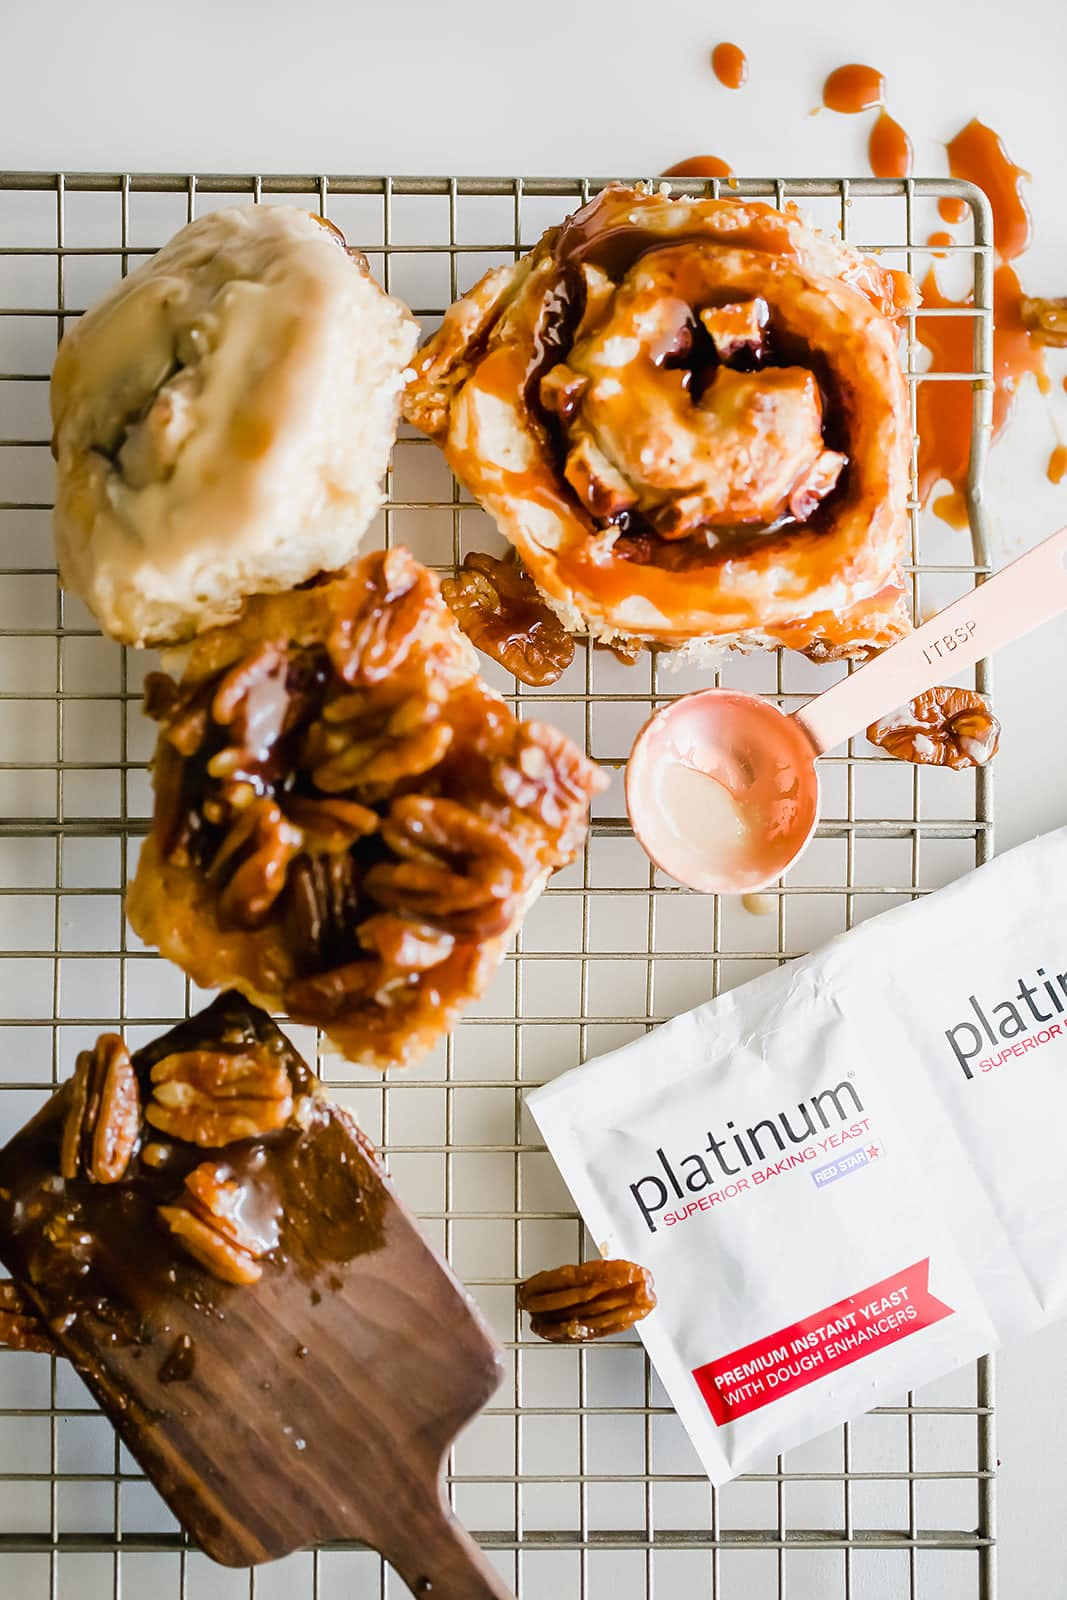 These 3 Easy Cinnamon Roll recipes including caramel apple, banana bread, and sticky pecan are perfect for fall and surprisingly simple to make from scratch!